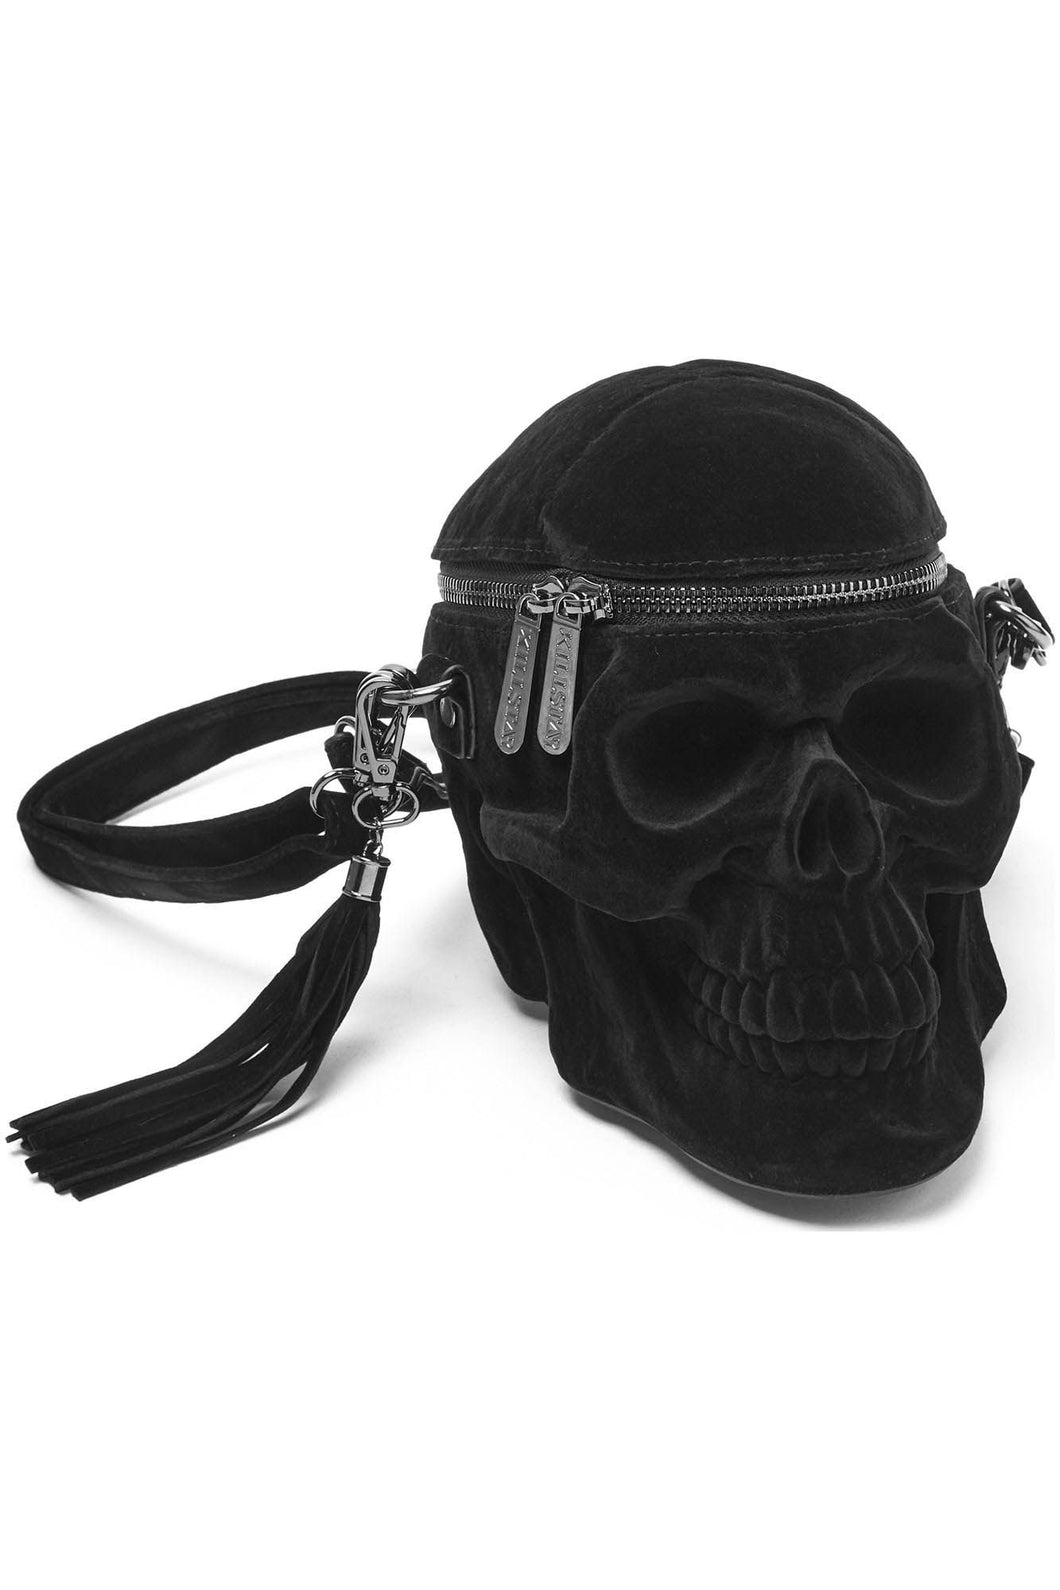 Killstar Velvet Grave Digger Skull Handbag - Kate's Clothing